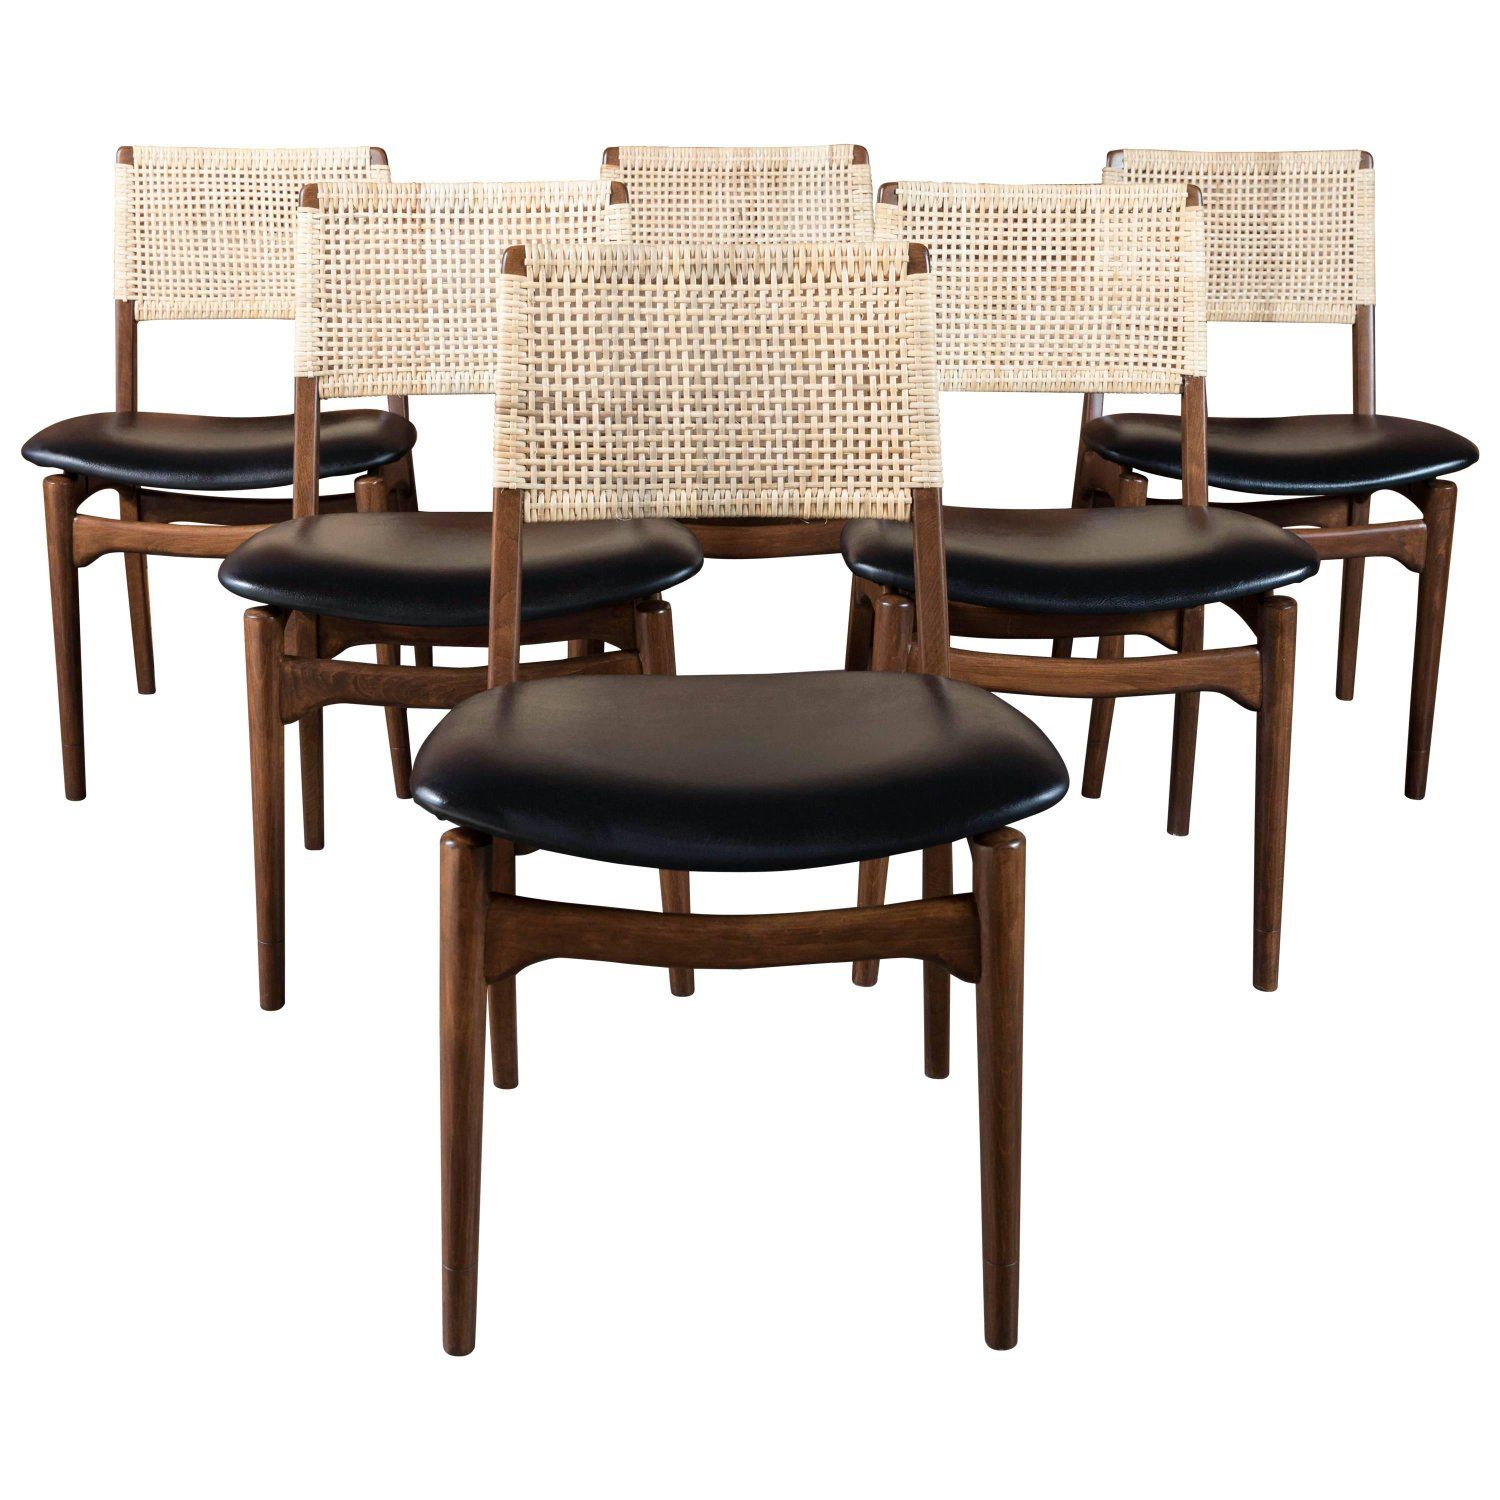 Midcentury Danish Modern Walnut and Cane Dining Chairs Set of Six